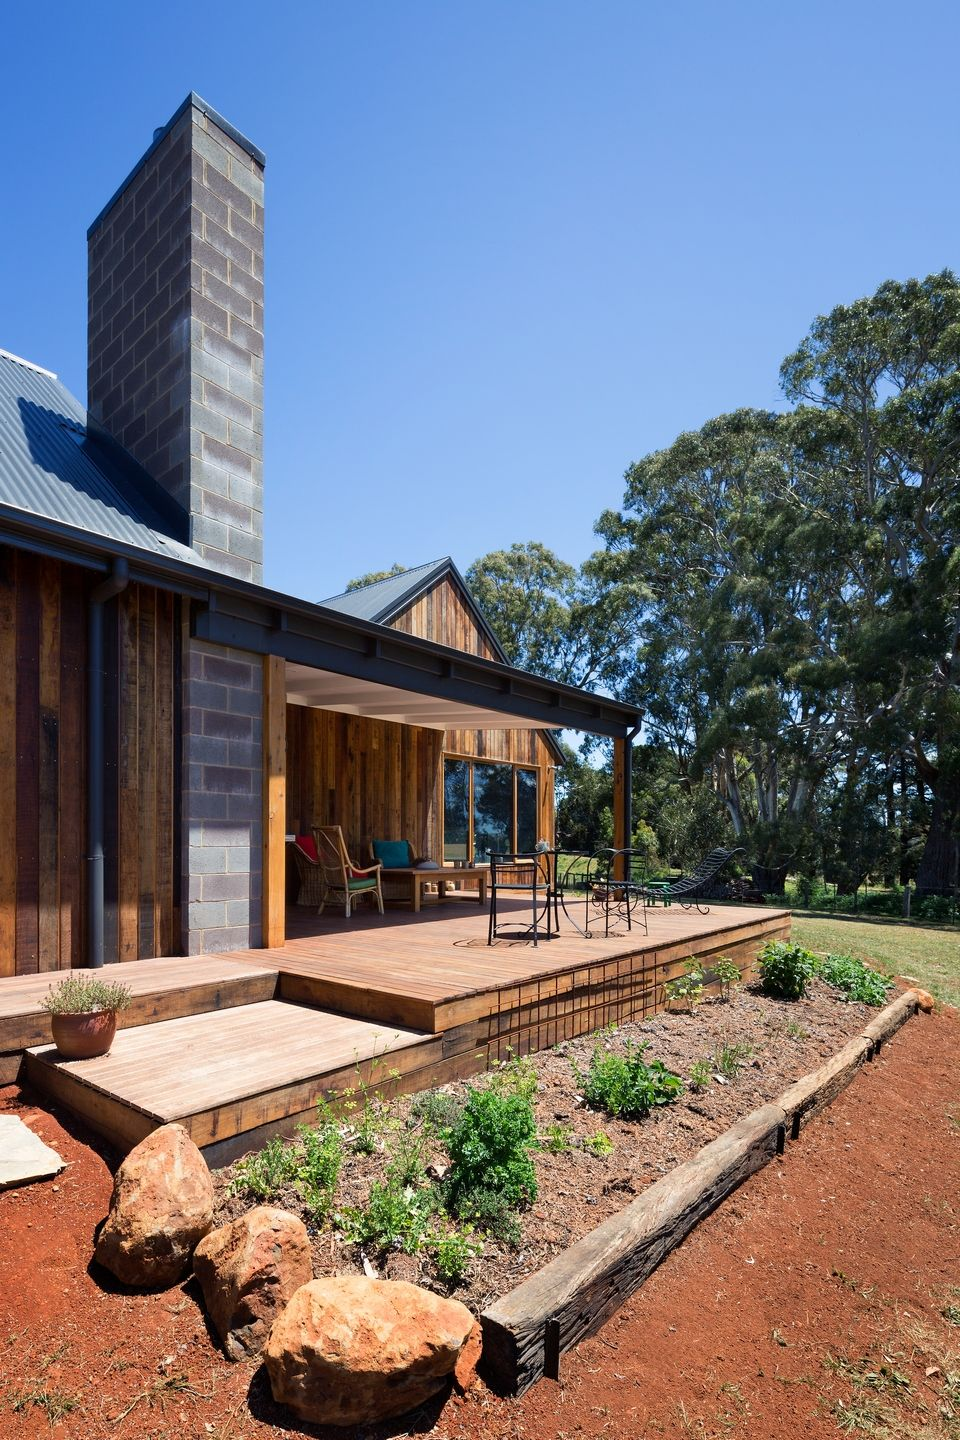 Self Sufficient Living Self Sufficient Homes Environmentally Sustainable Home Design Passive House Design Eco House Design Sustainable House Design